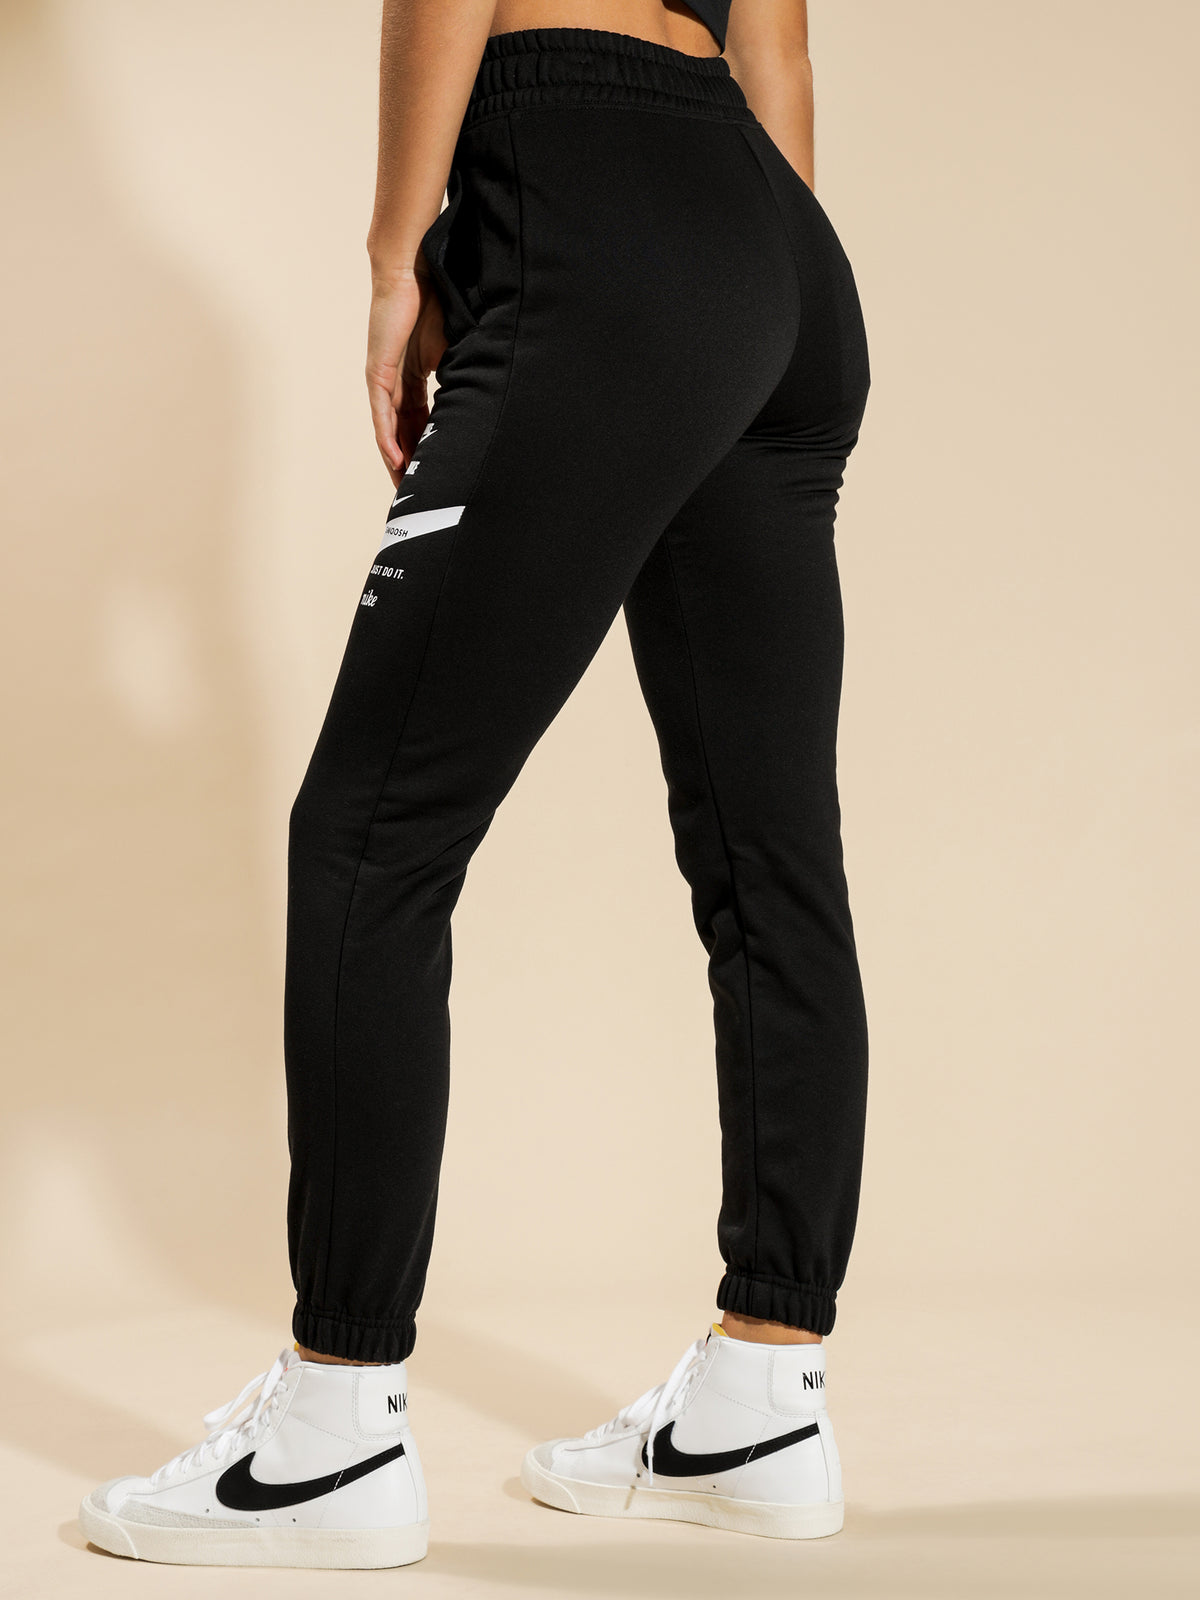 Sportswear Swoosh Pants in Black & White